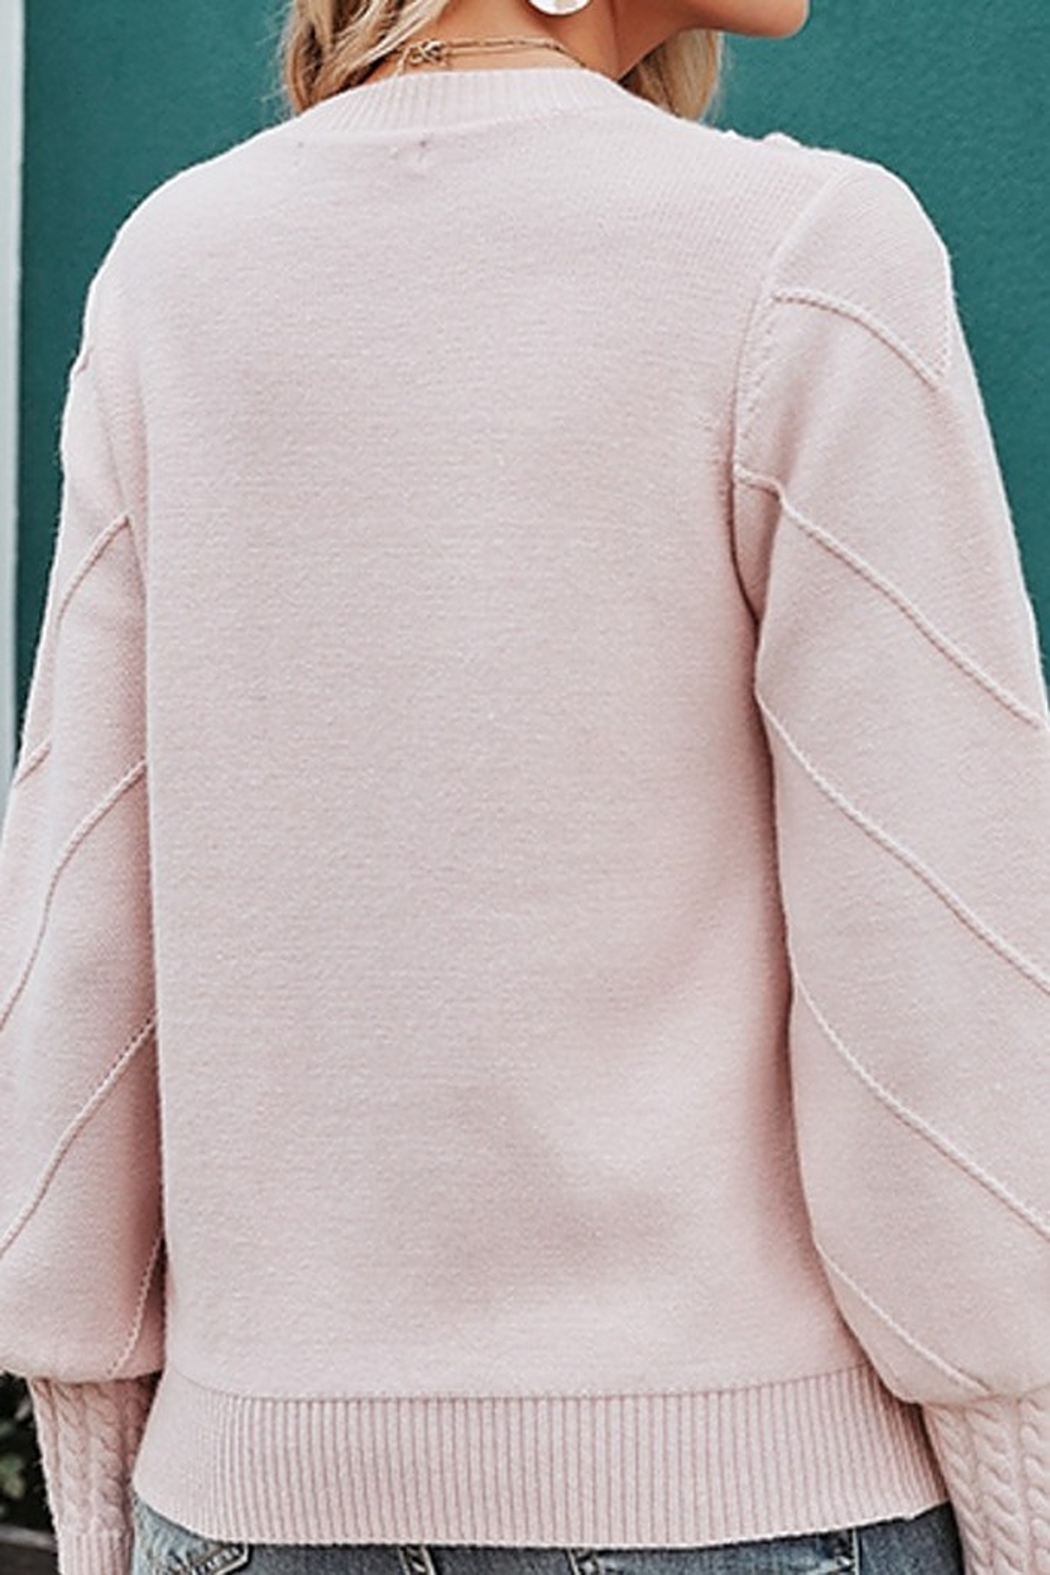 Esley  Molly Keep It Toasty Cable Knit Pullover Sweater - Side Cropped Image